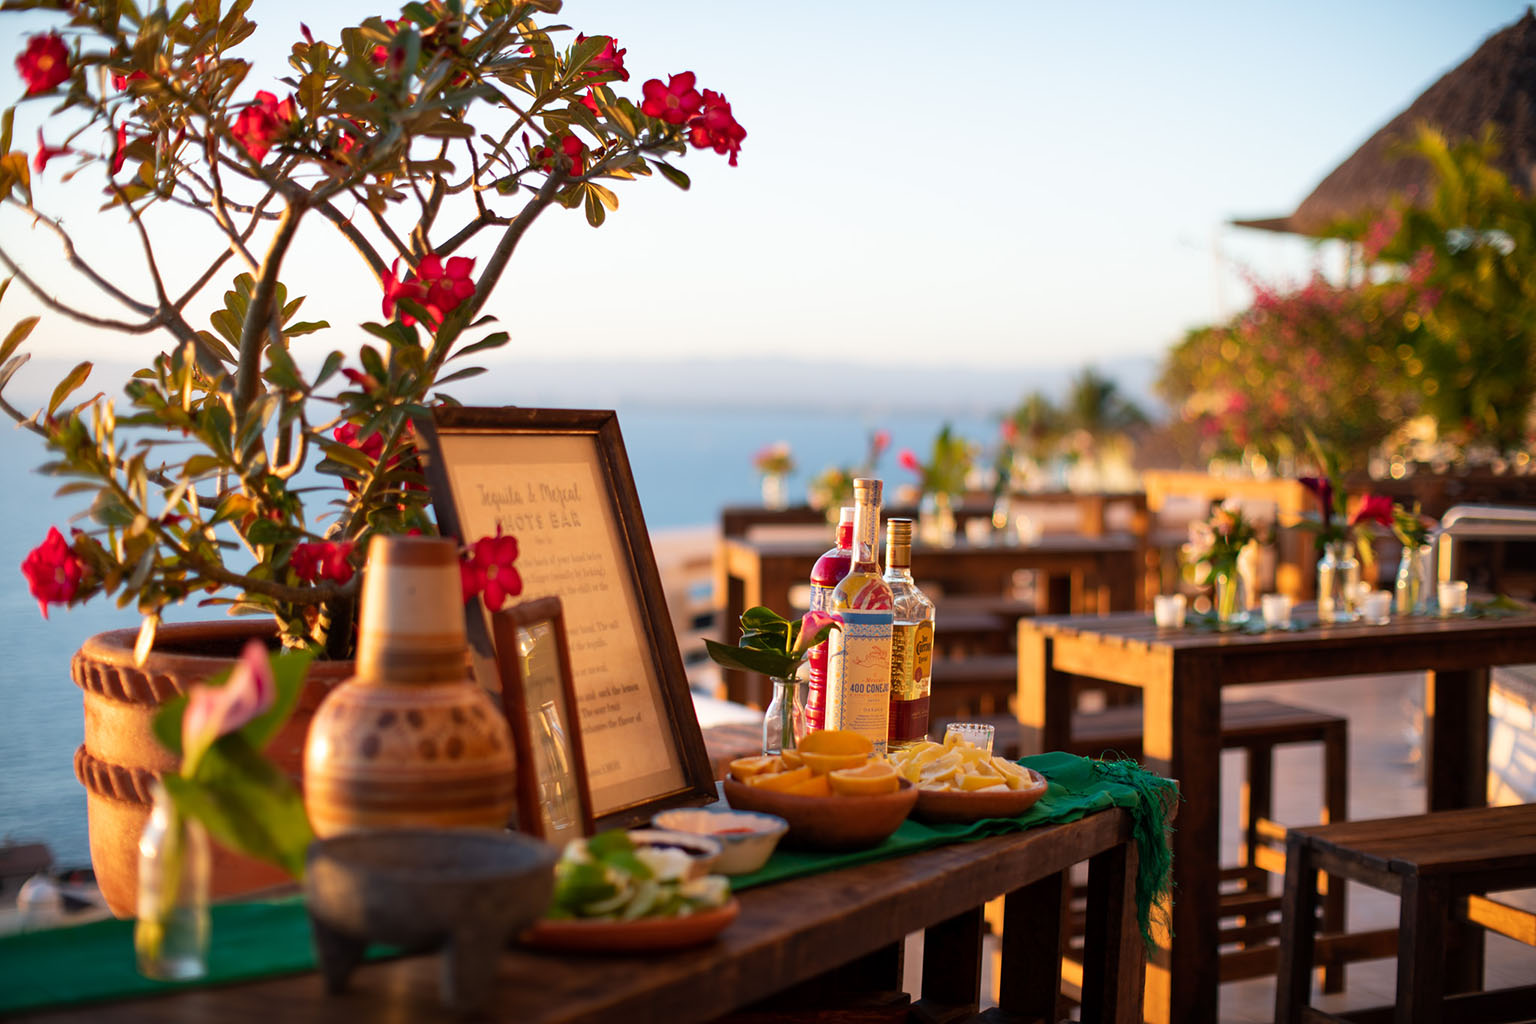 The self serve tequila and mezcal bar, overlooking the bay at sunset. Photo by  Cristheell Bernal